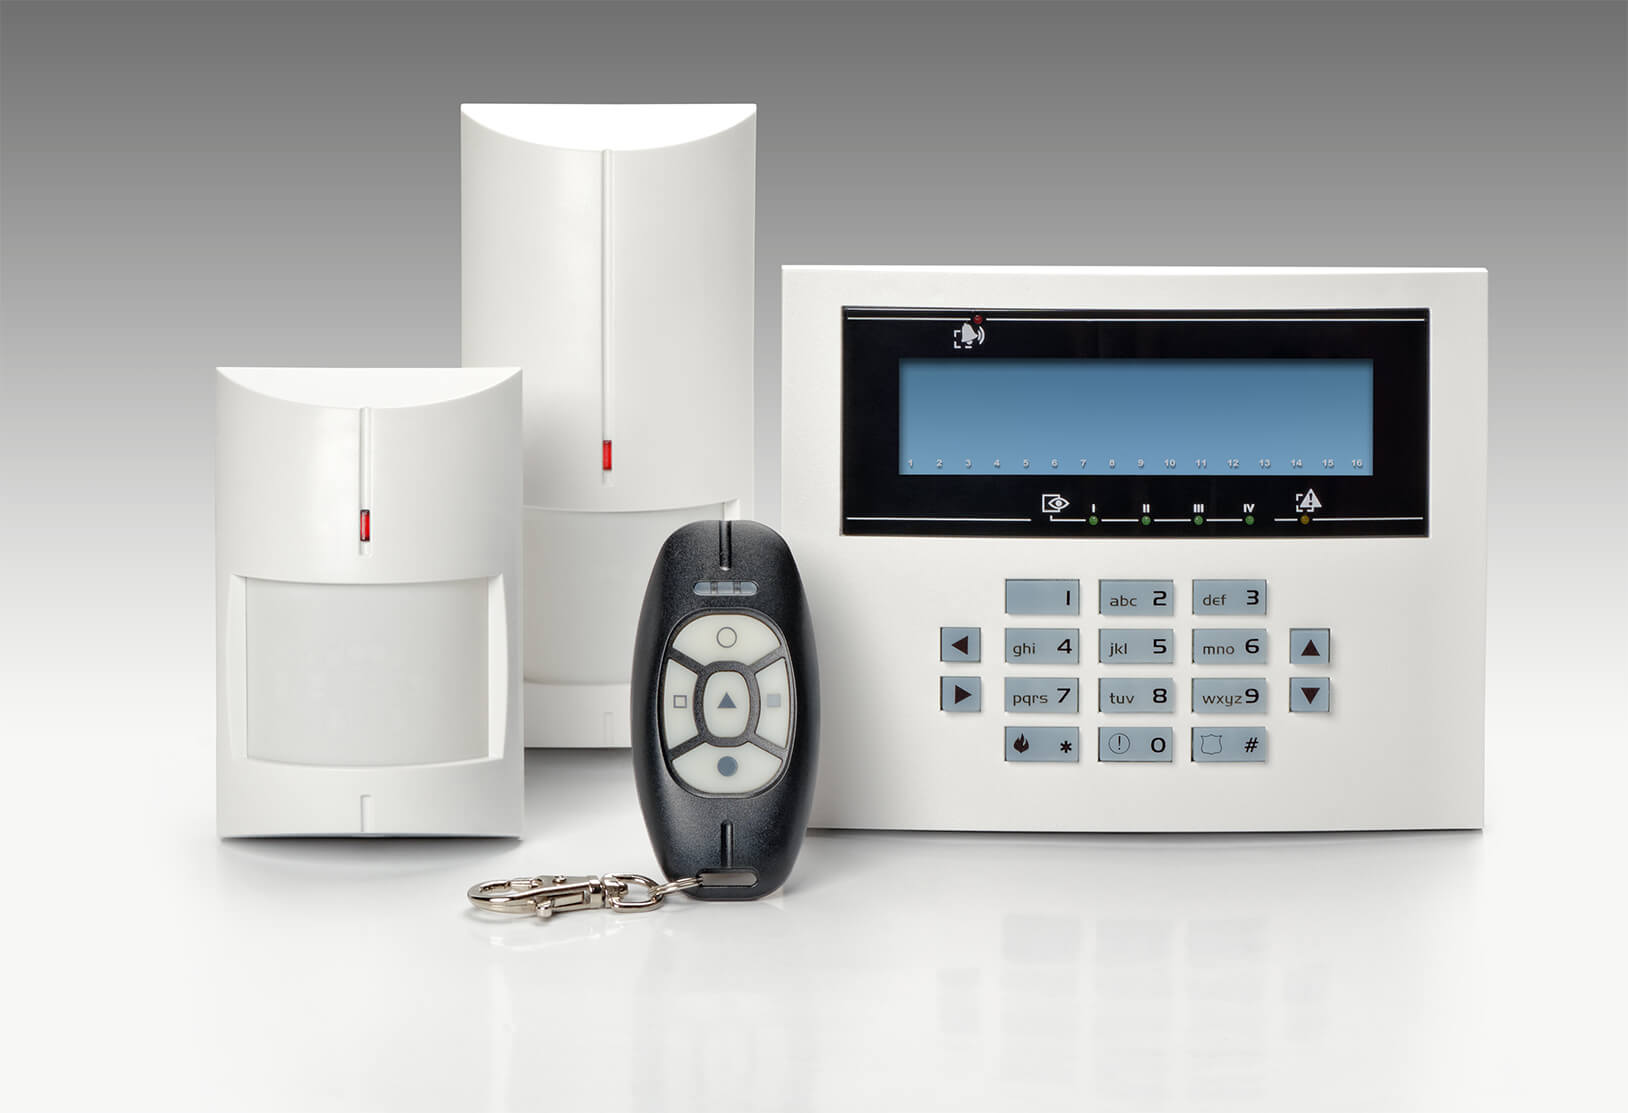 Business & Residential NSI / NACOSS Approved Burglar Alarms In North London - Local North London security company.Call 02078872244 - Dedicated to Safety & Security. Companies, shops and homes ..